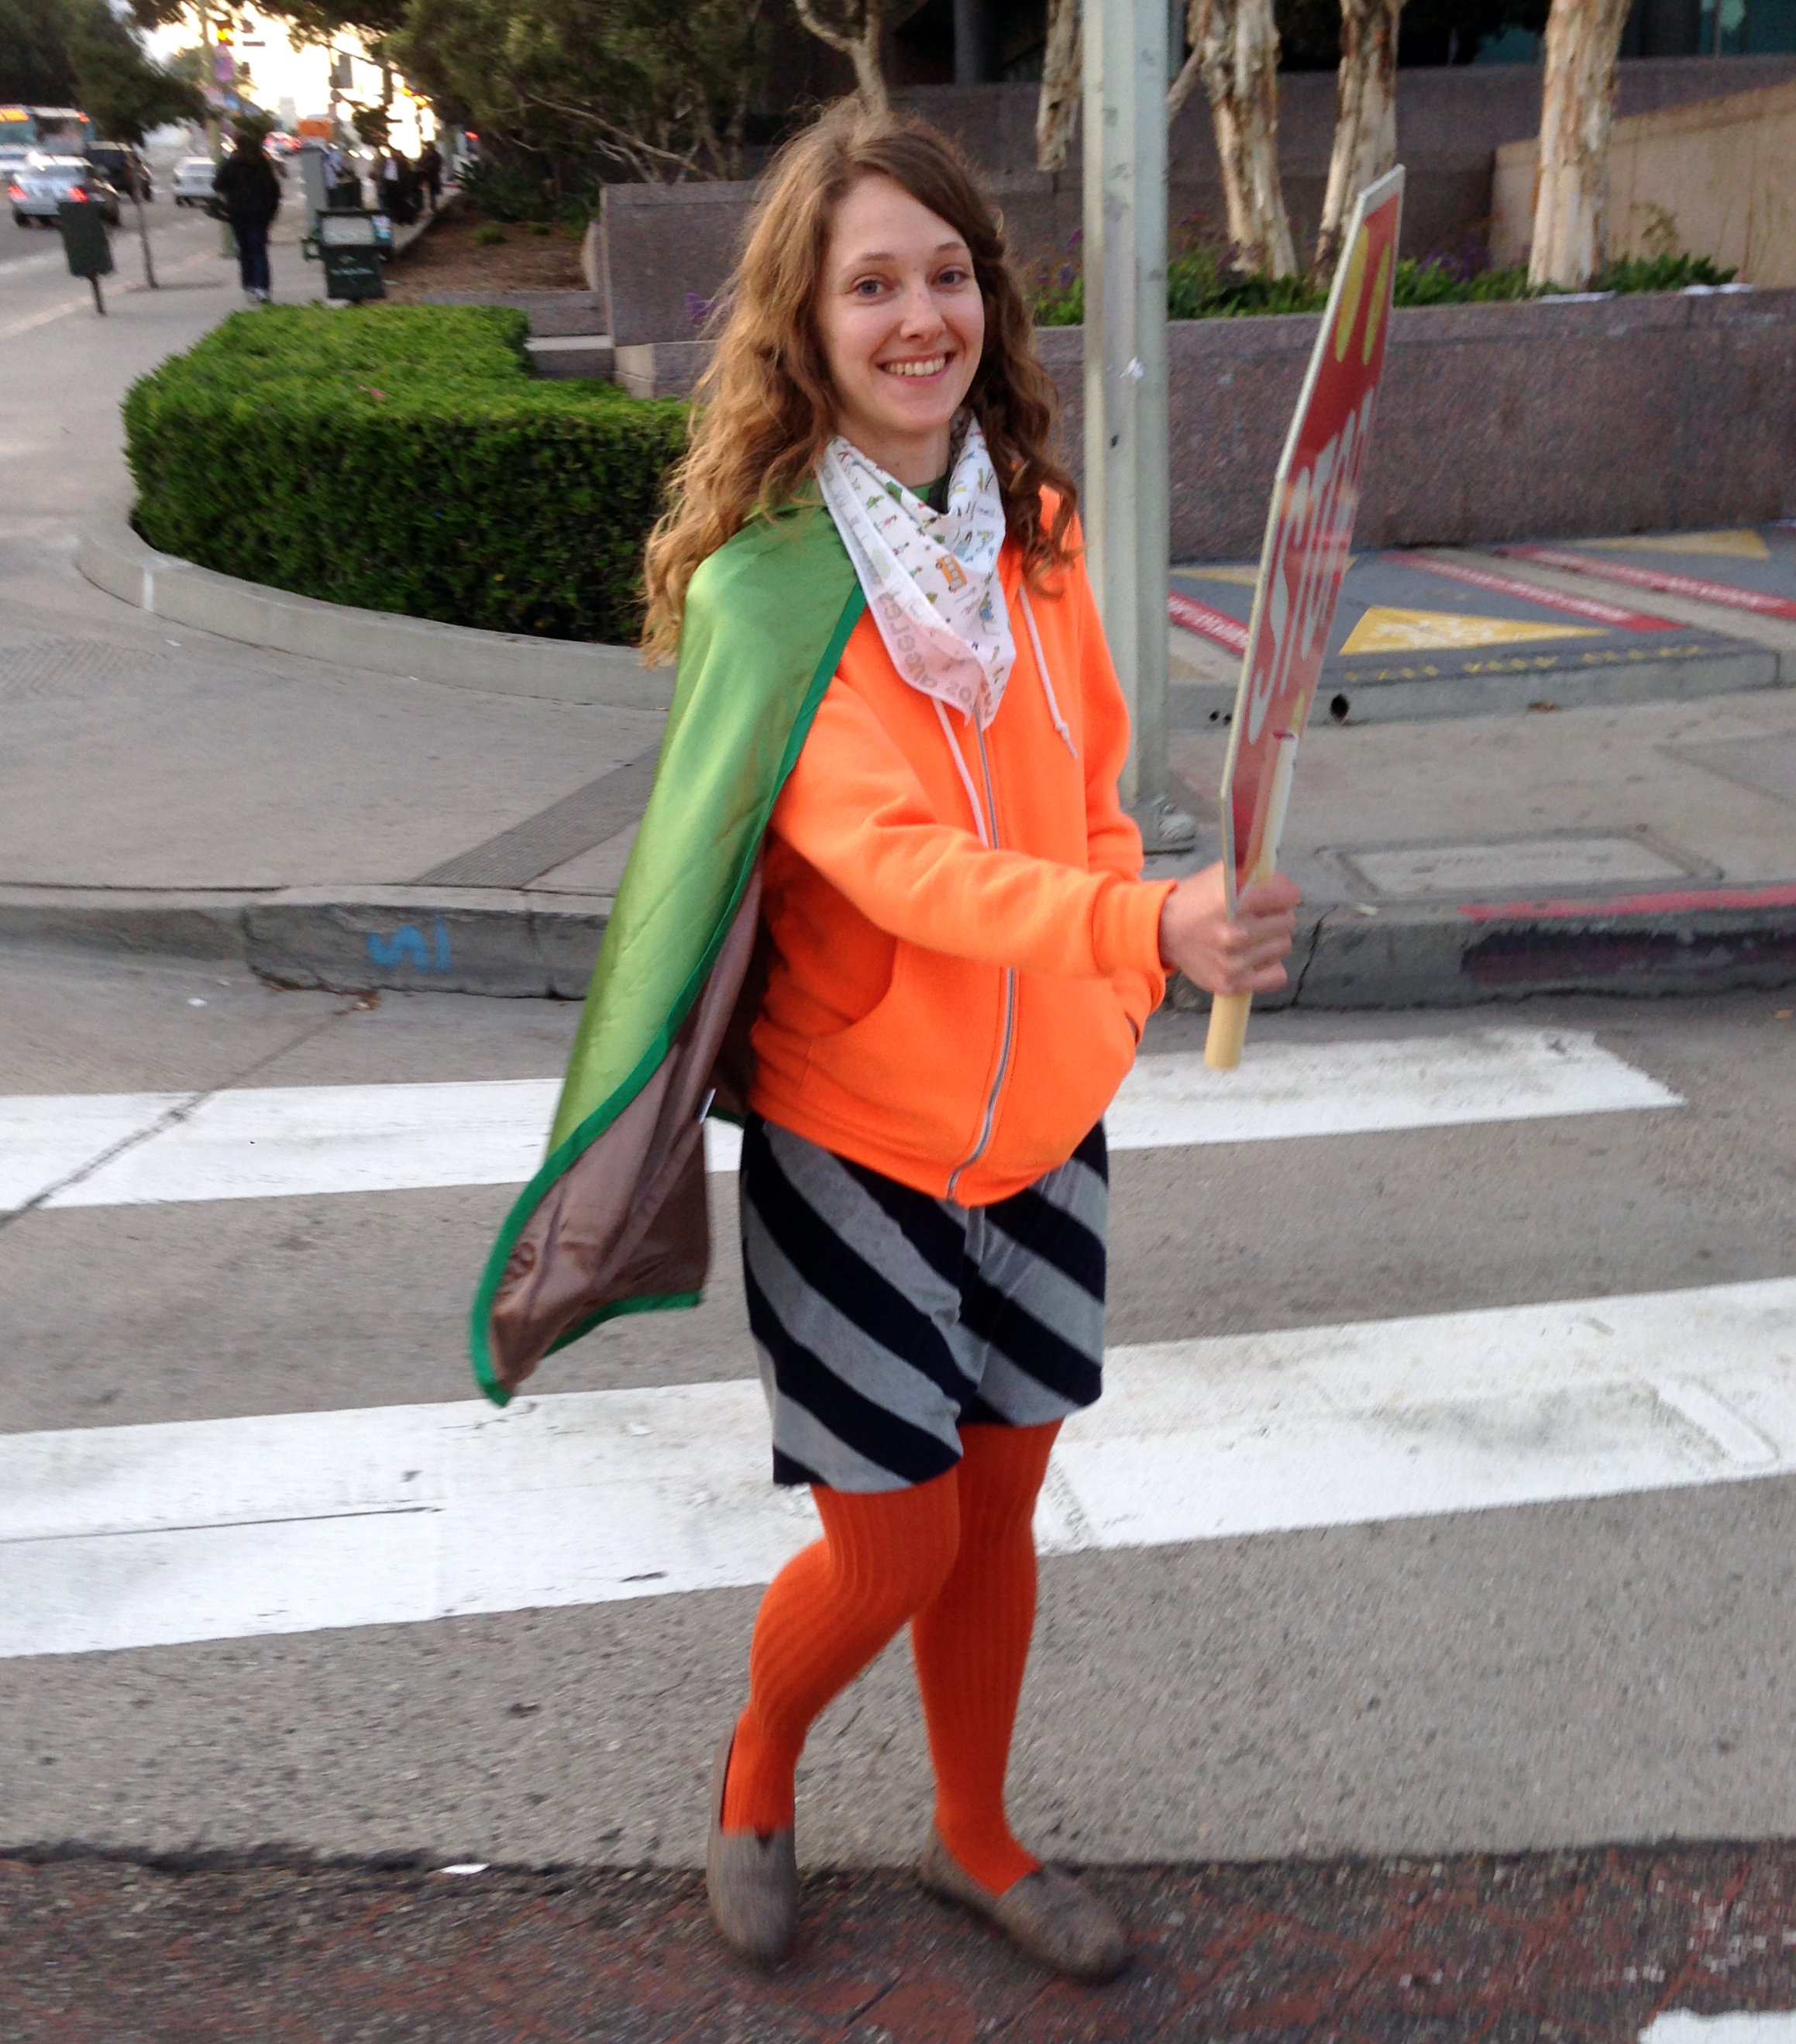 Keeping the crosswalk safe